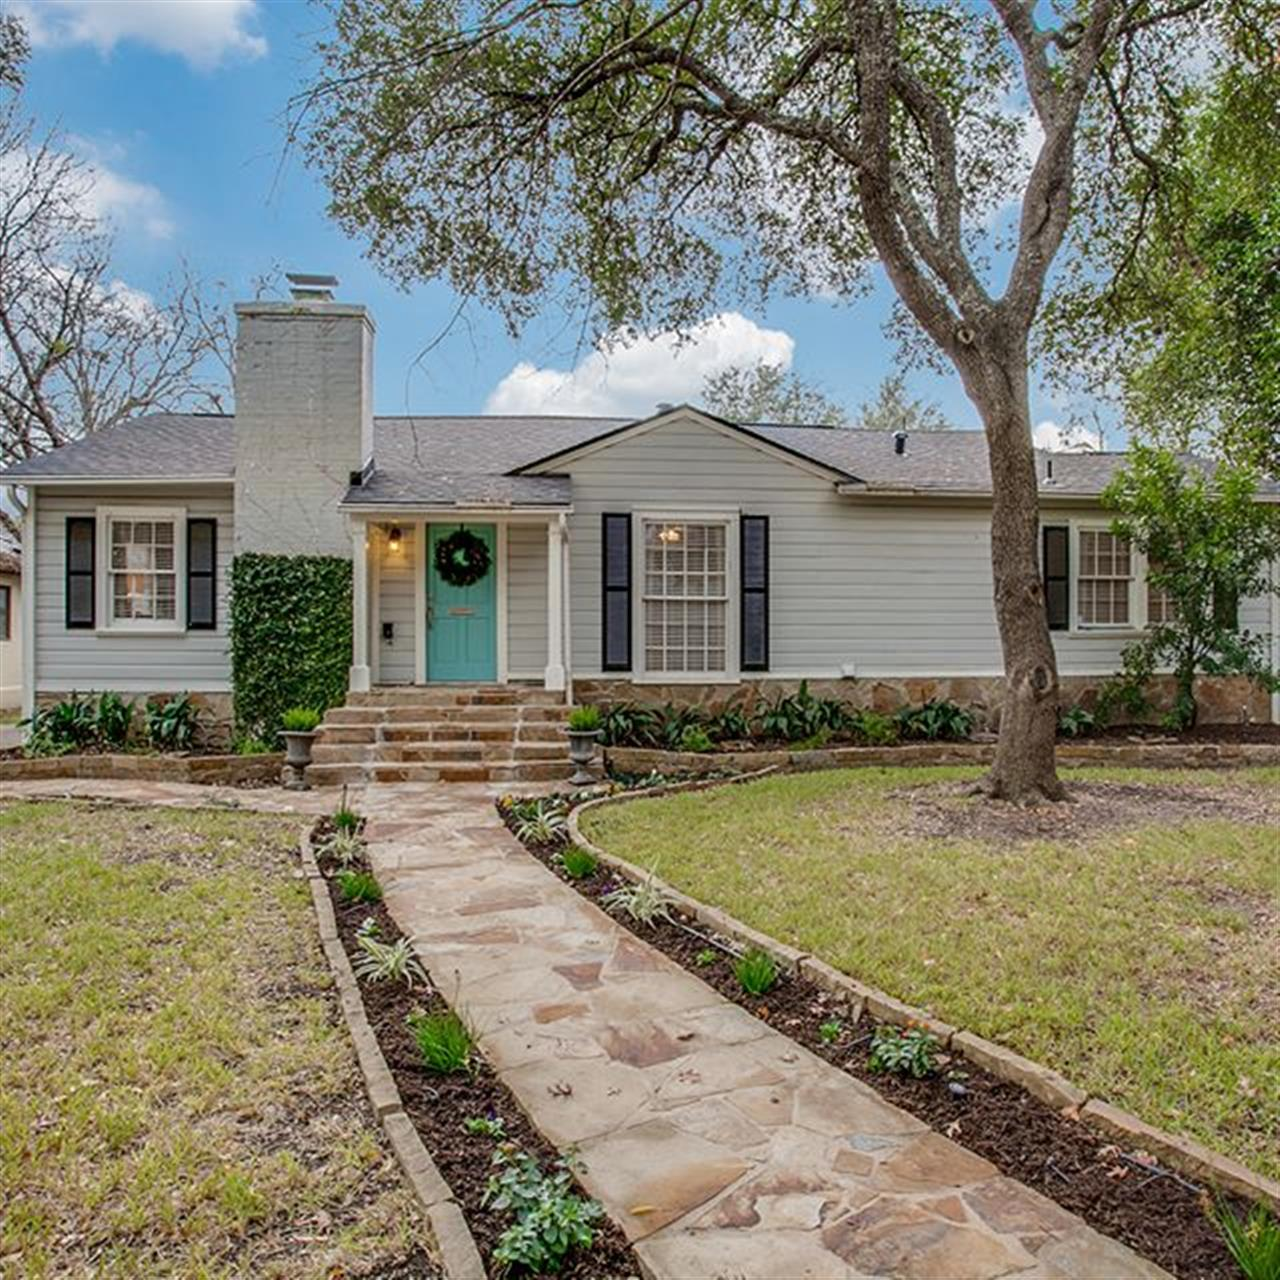 LUXURY OF THE DAY: 428 Canterbury Hill St. in #TerrellHills. This single-story home is situated on a lovely tree-lined street in the heart of Terrell Hills. #TheVeryBest